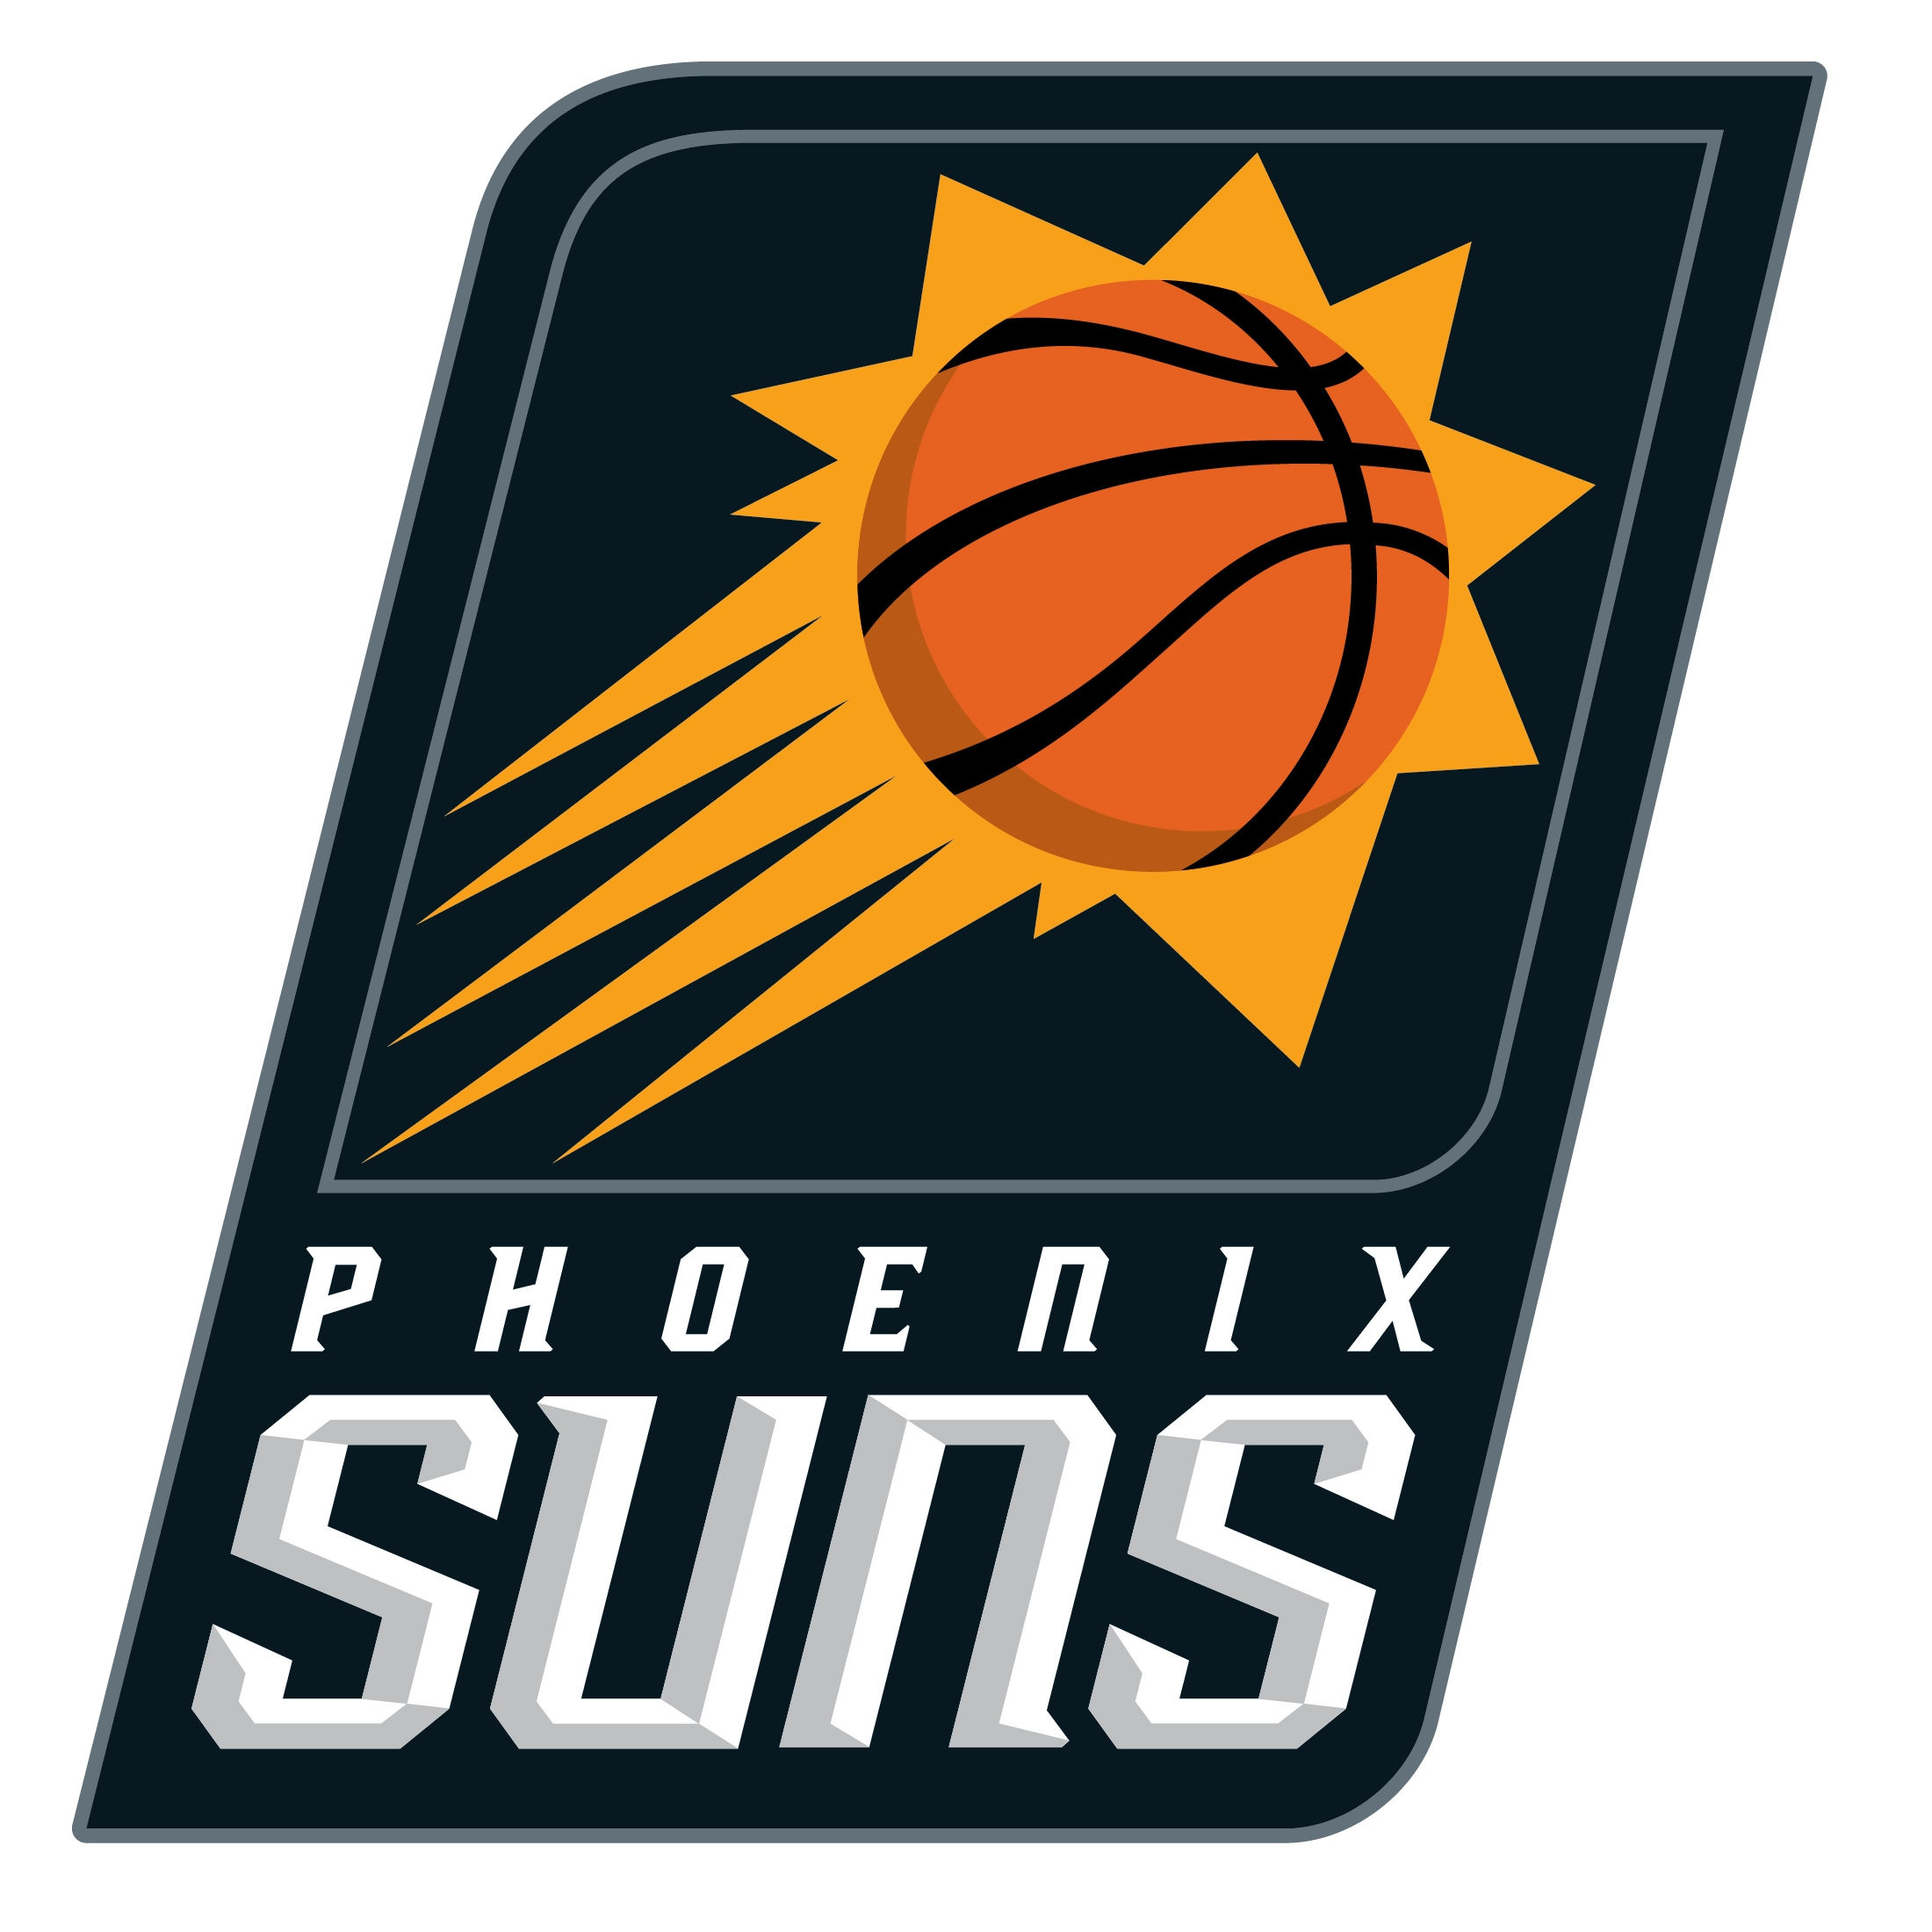 Phoenix suns logos download for Today s interiors phoenix